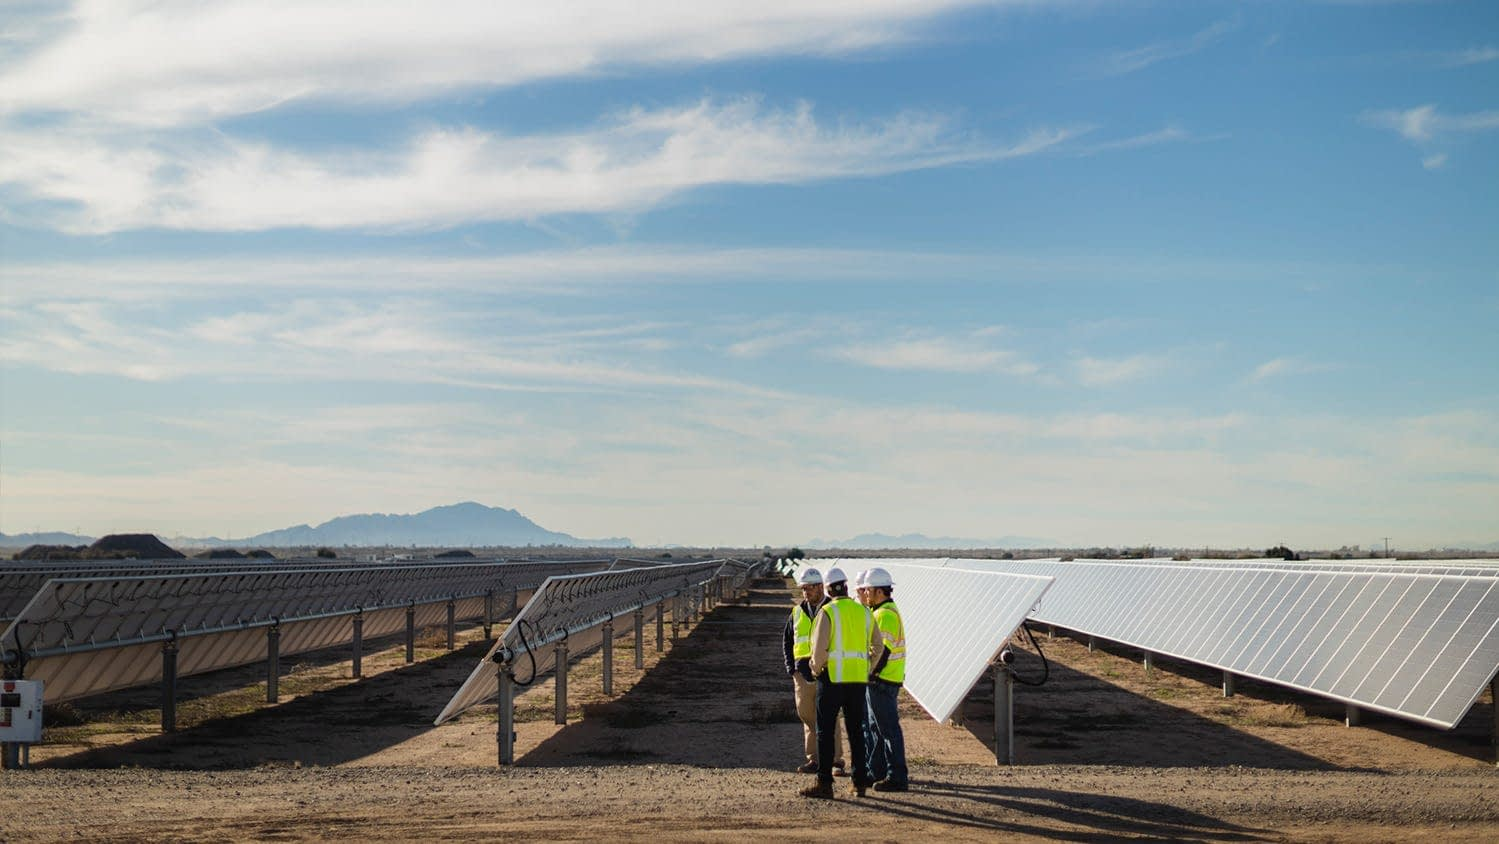 Salt River Project and sPower announced the construction of its new plant in Arizona